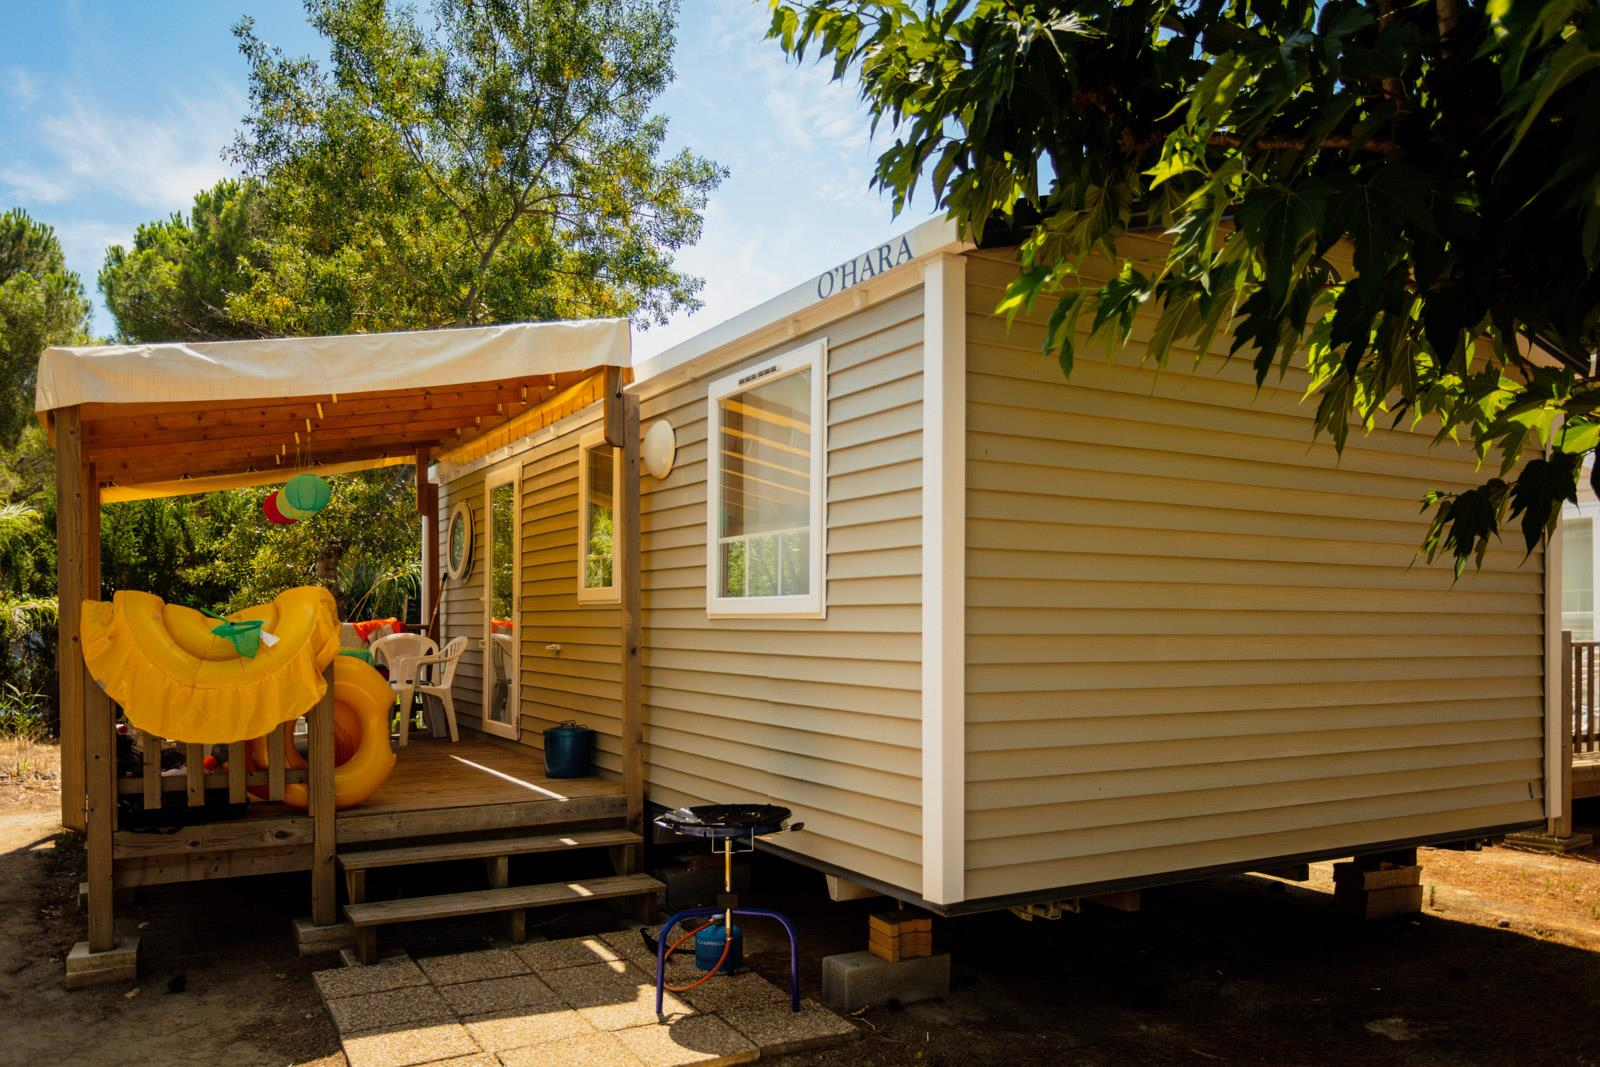 Location - Mobil-Home Caraïbes Climatisé - 2 Chambres - Chadotel Camping Le Trivoly